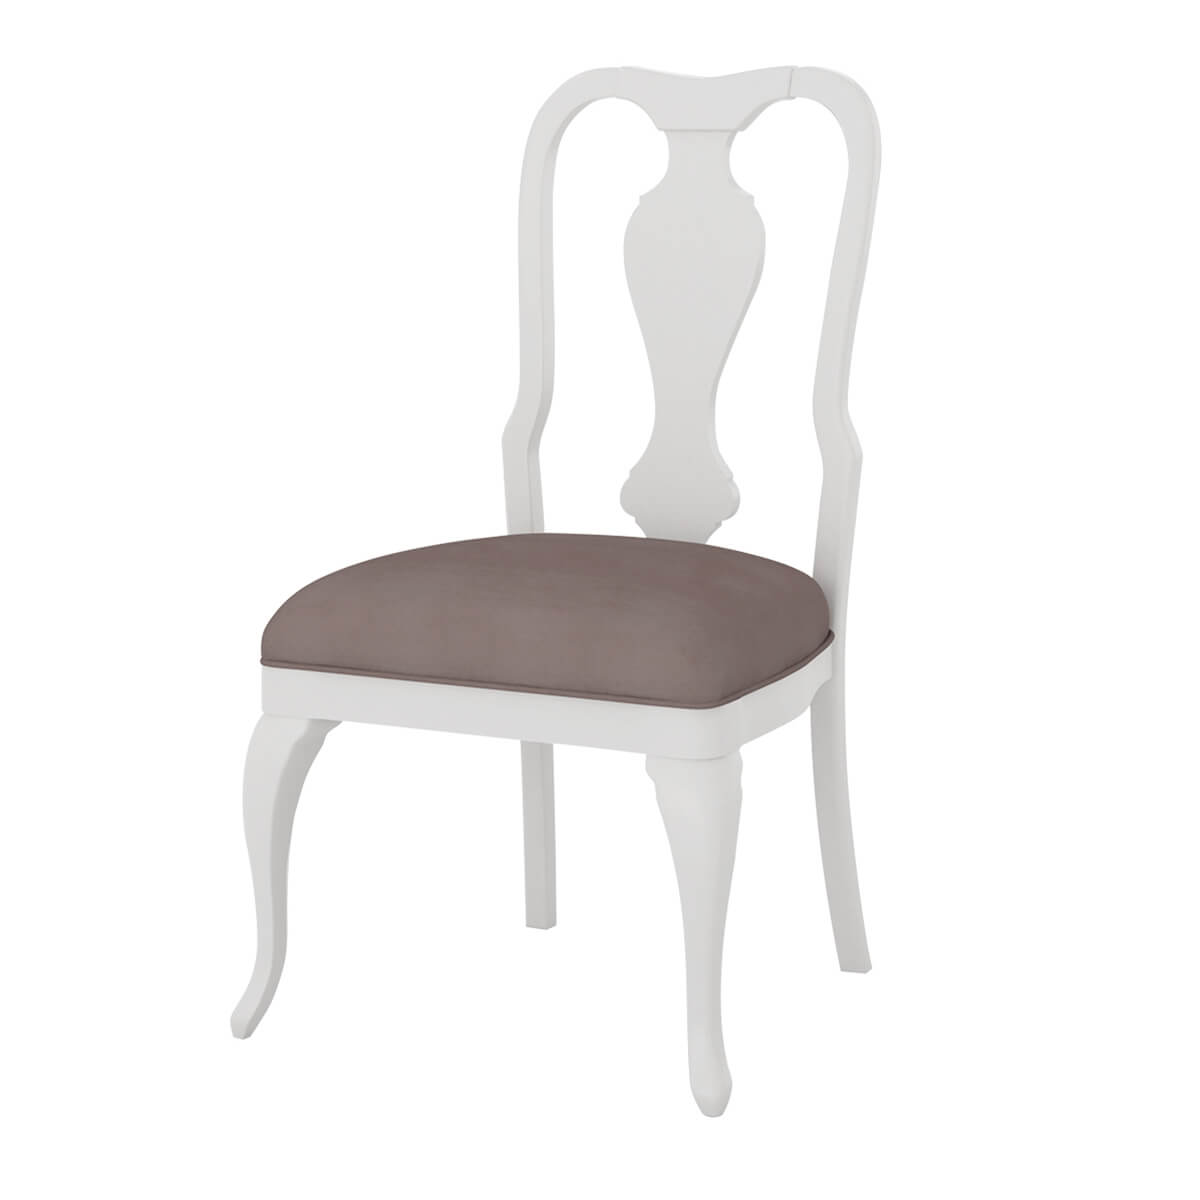 Anderra Solid Mahogany Wood White Dining Chair with Upholstered Seat